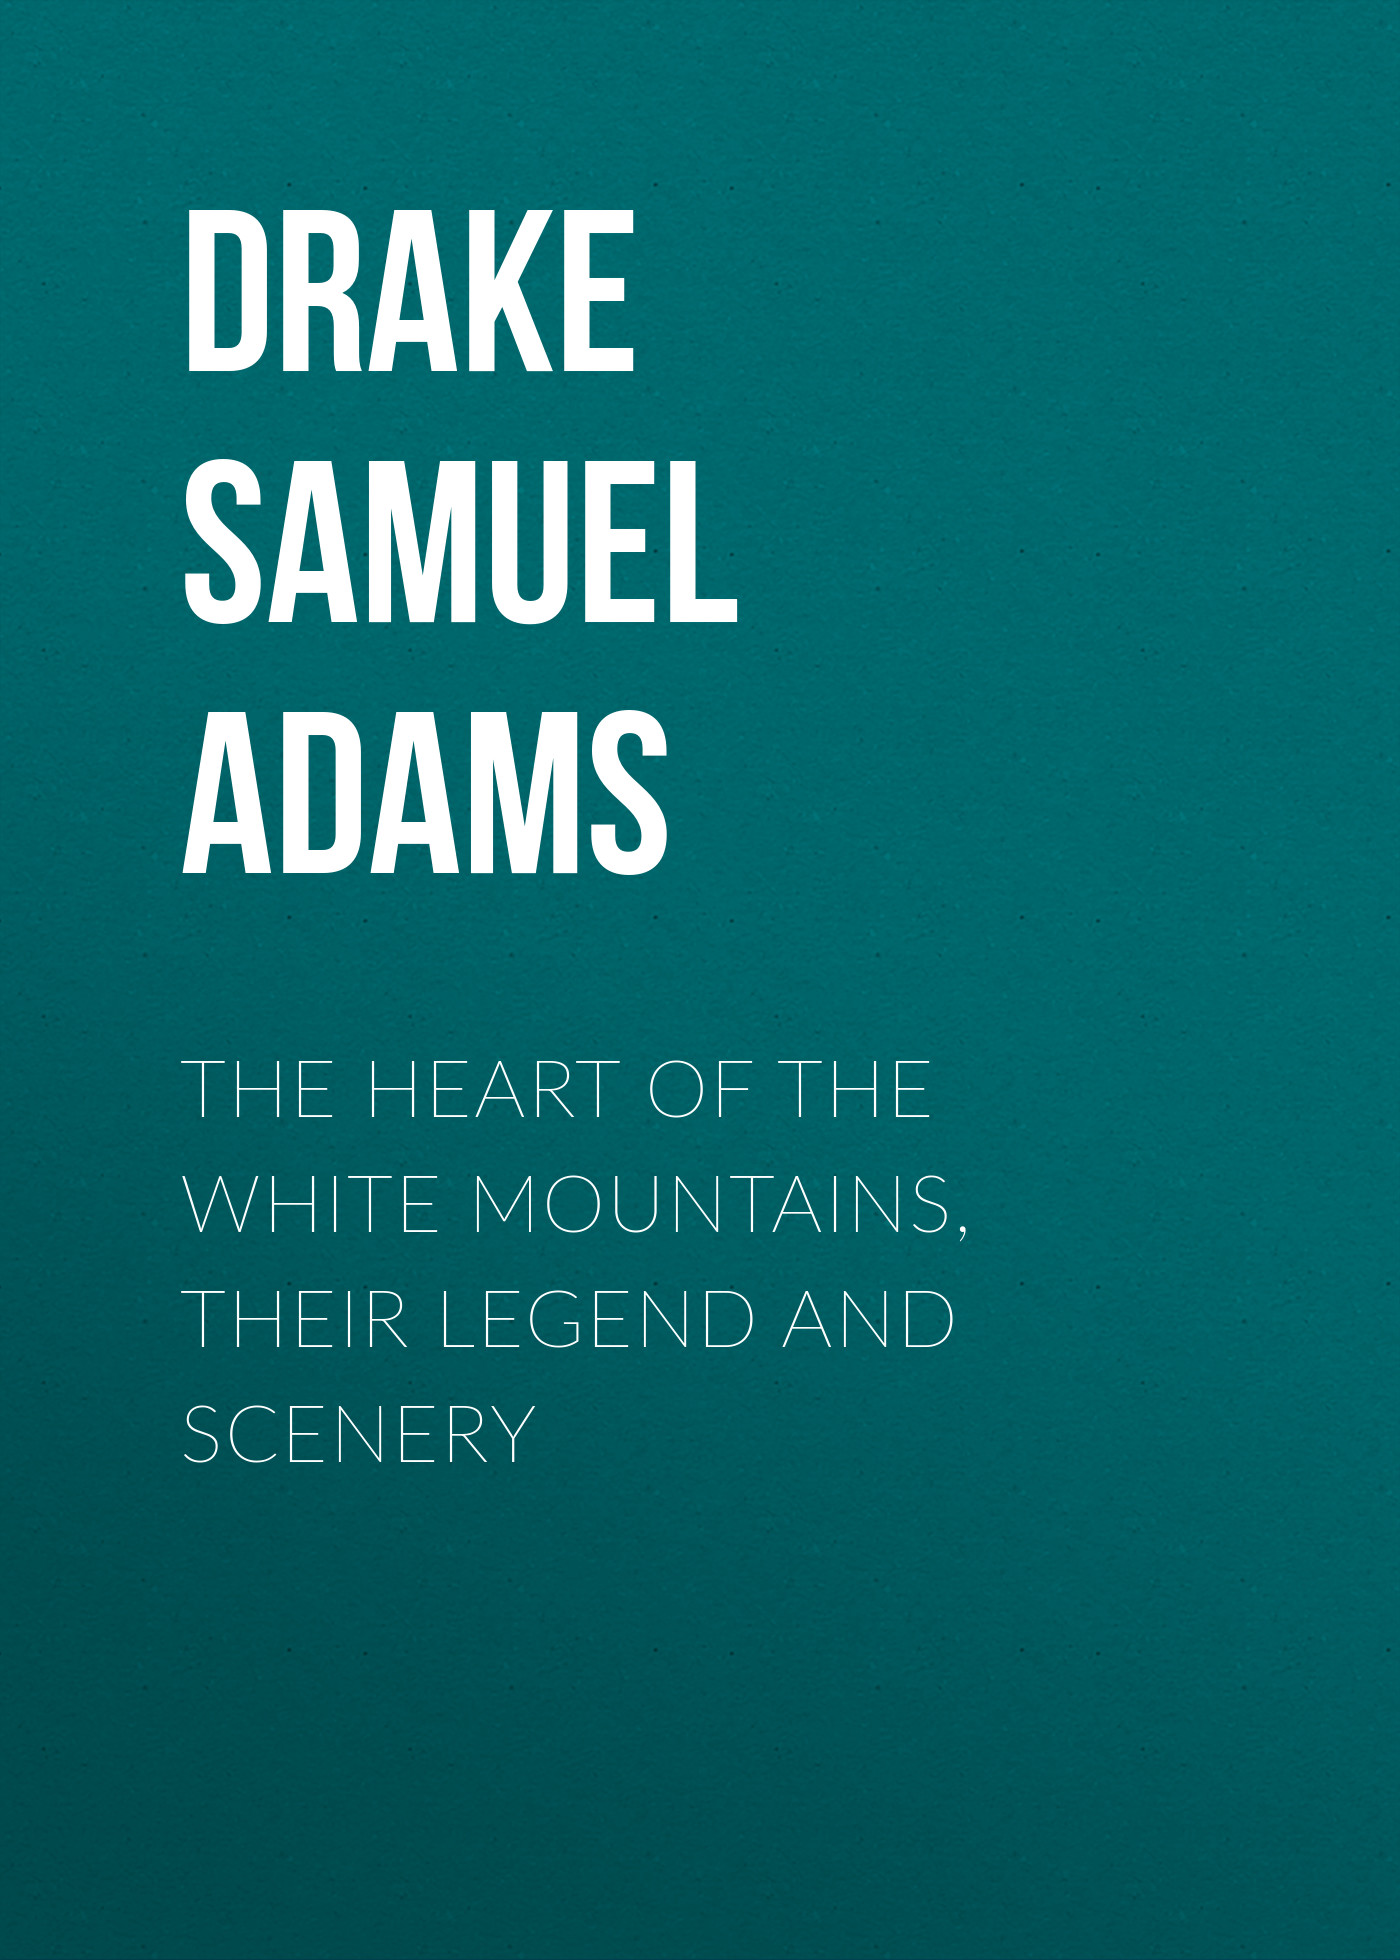 цена на Drake Samuel Adams The Heart of the White Mountains, Their Legend and Scenery